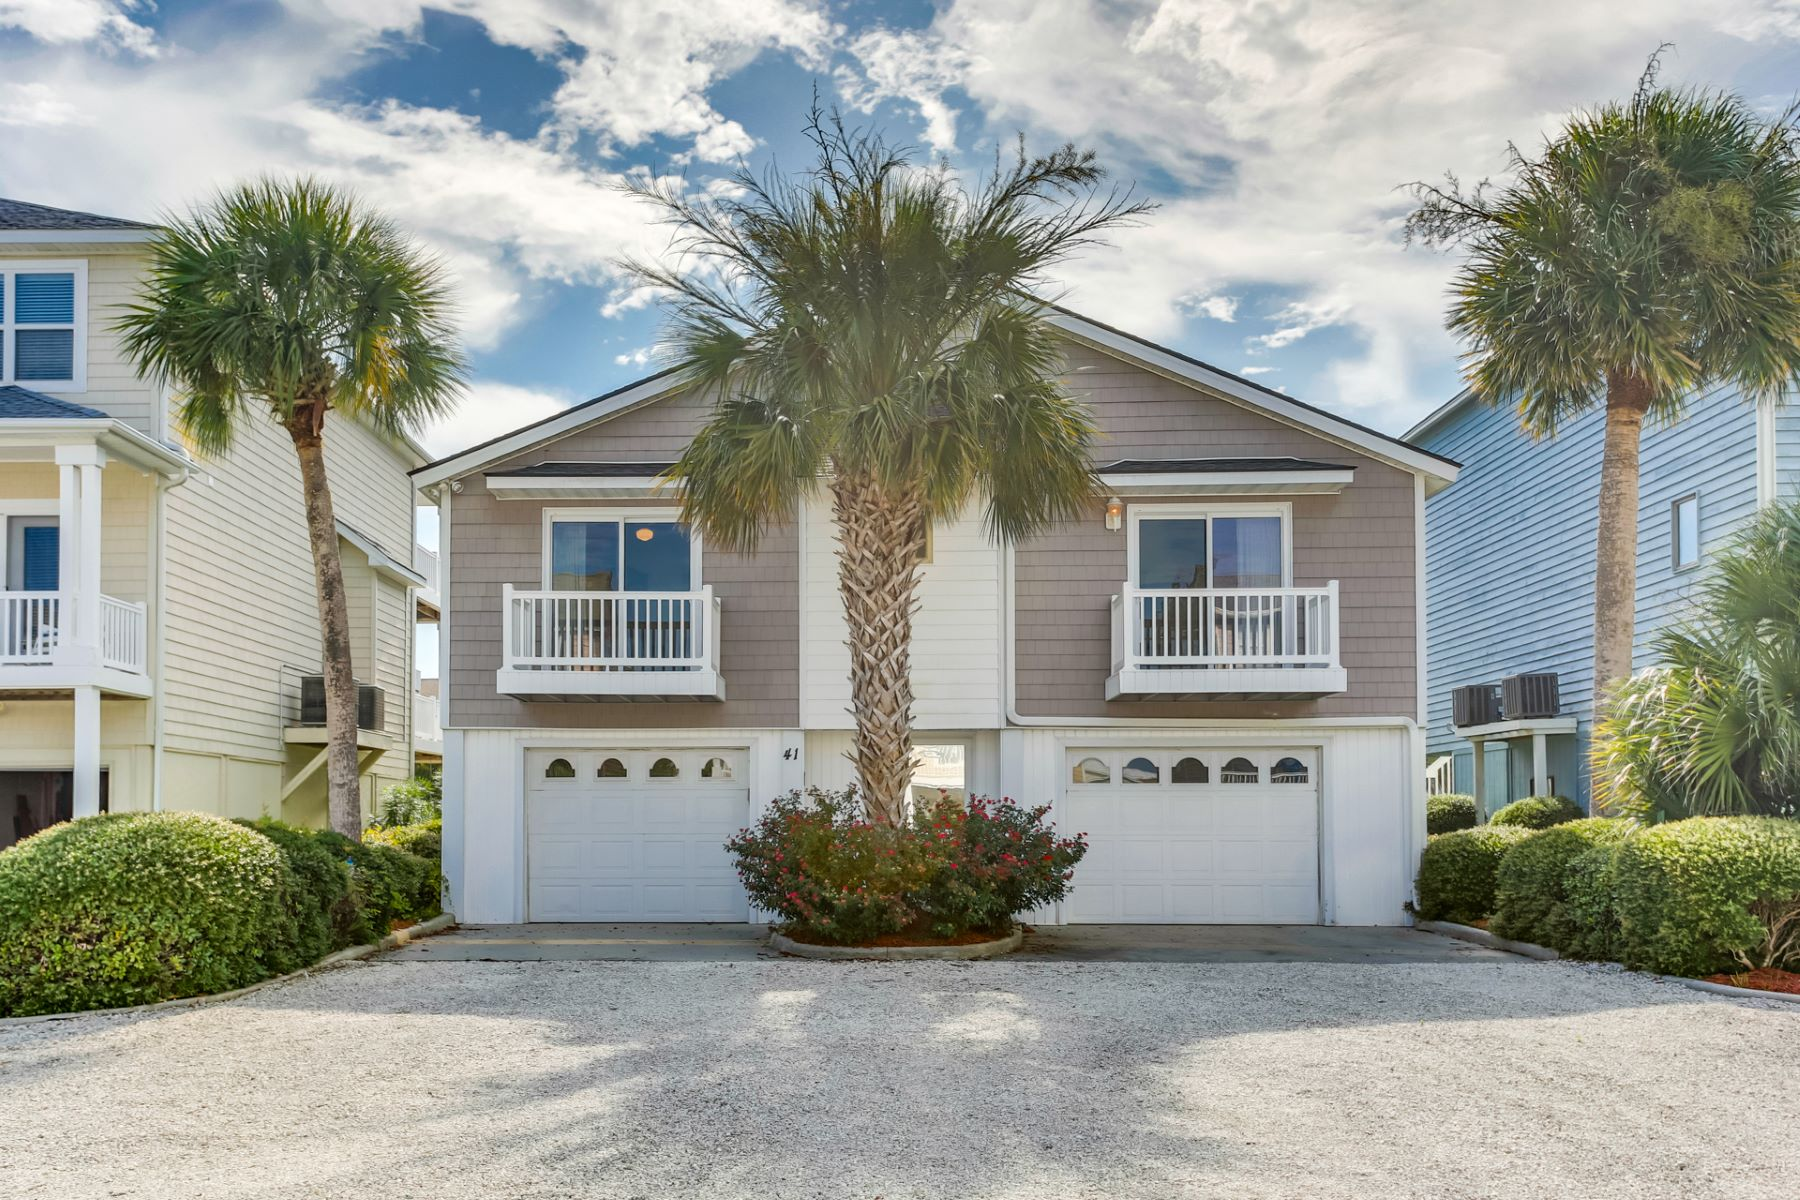 Single Family Homes for Sale at Carefree Island Living 41 Pender Street Ocean Isle Beach, North Carolina 28469 United States